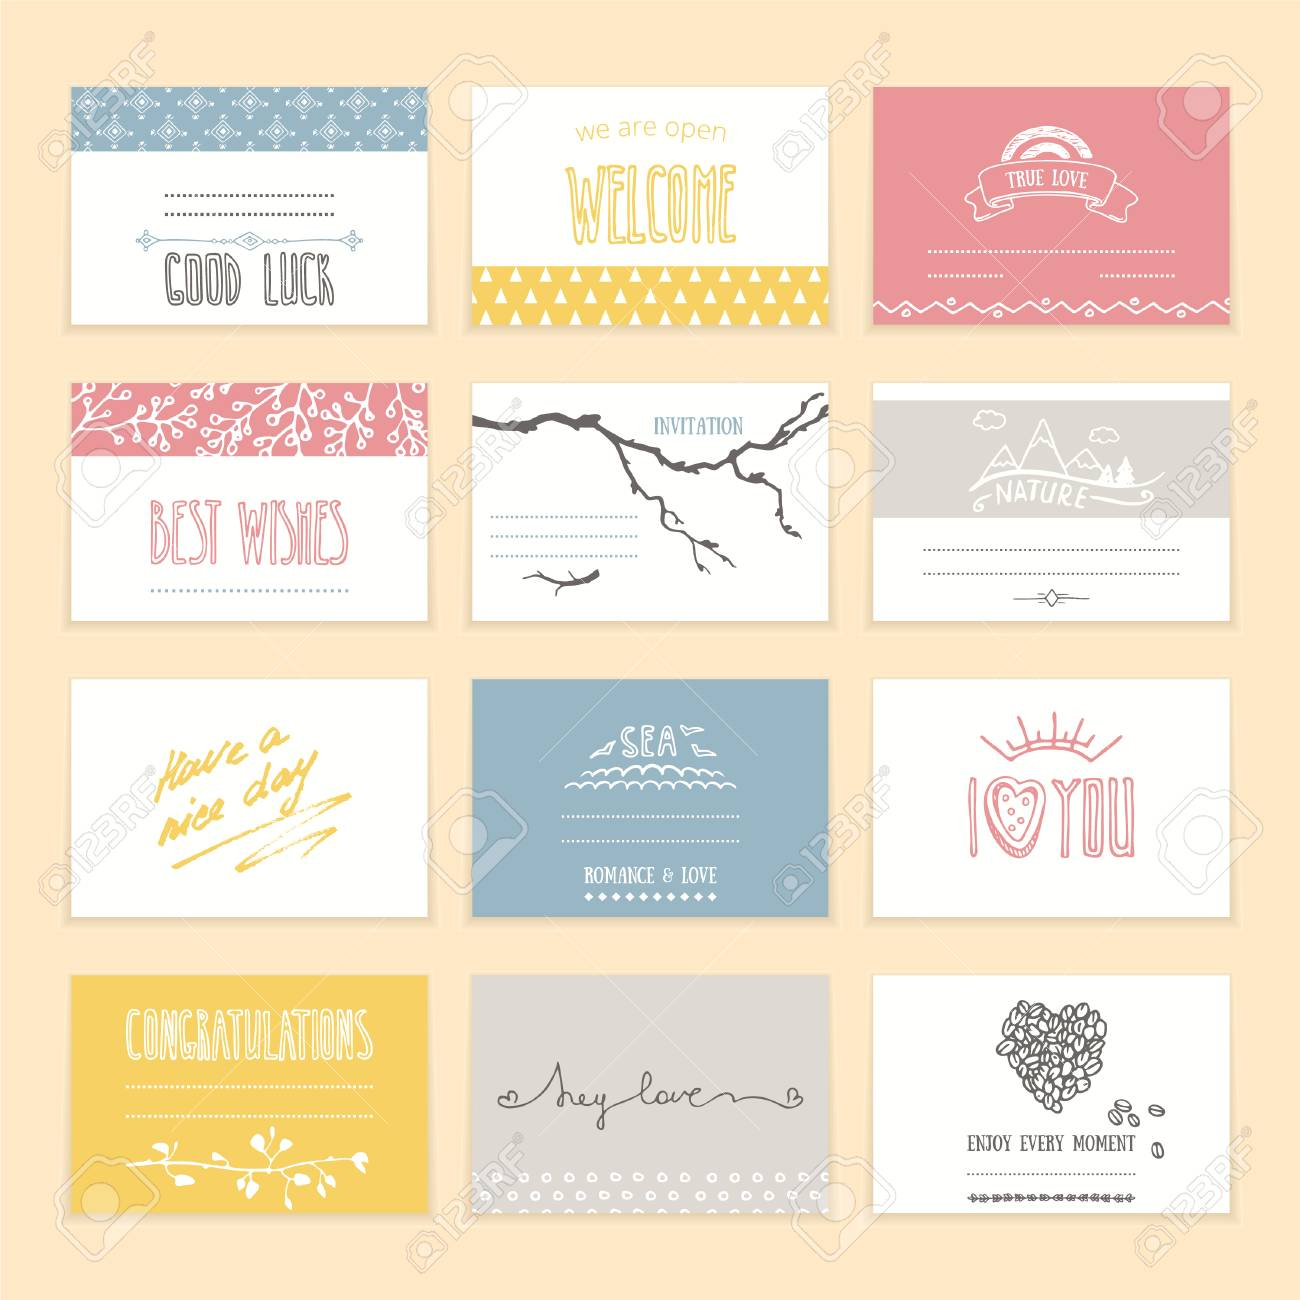 Romantic Invitation And Greeting Cards With Cute Hand Drawn Elements